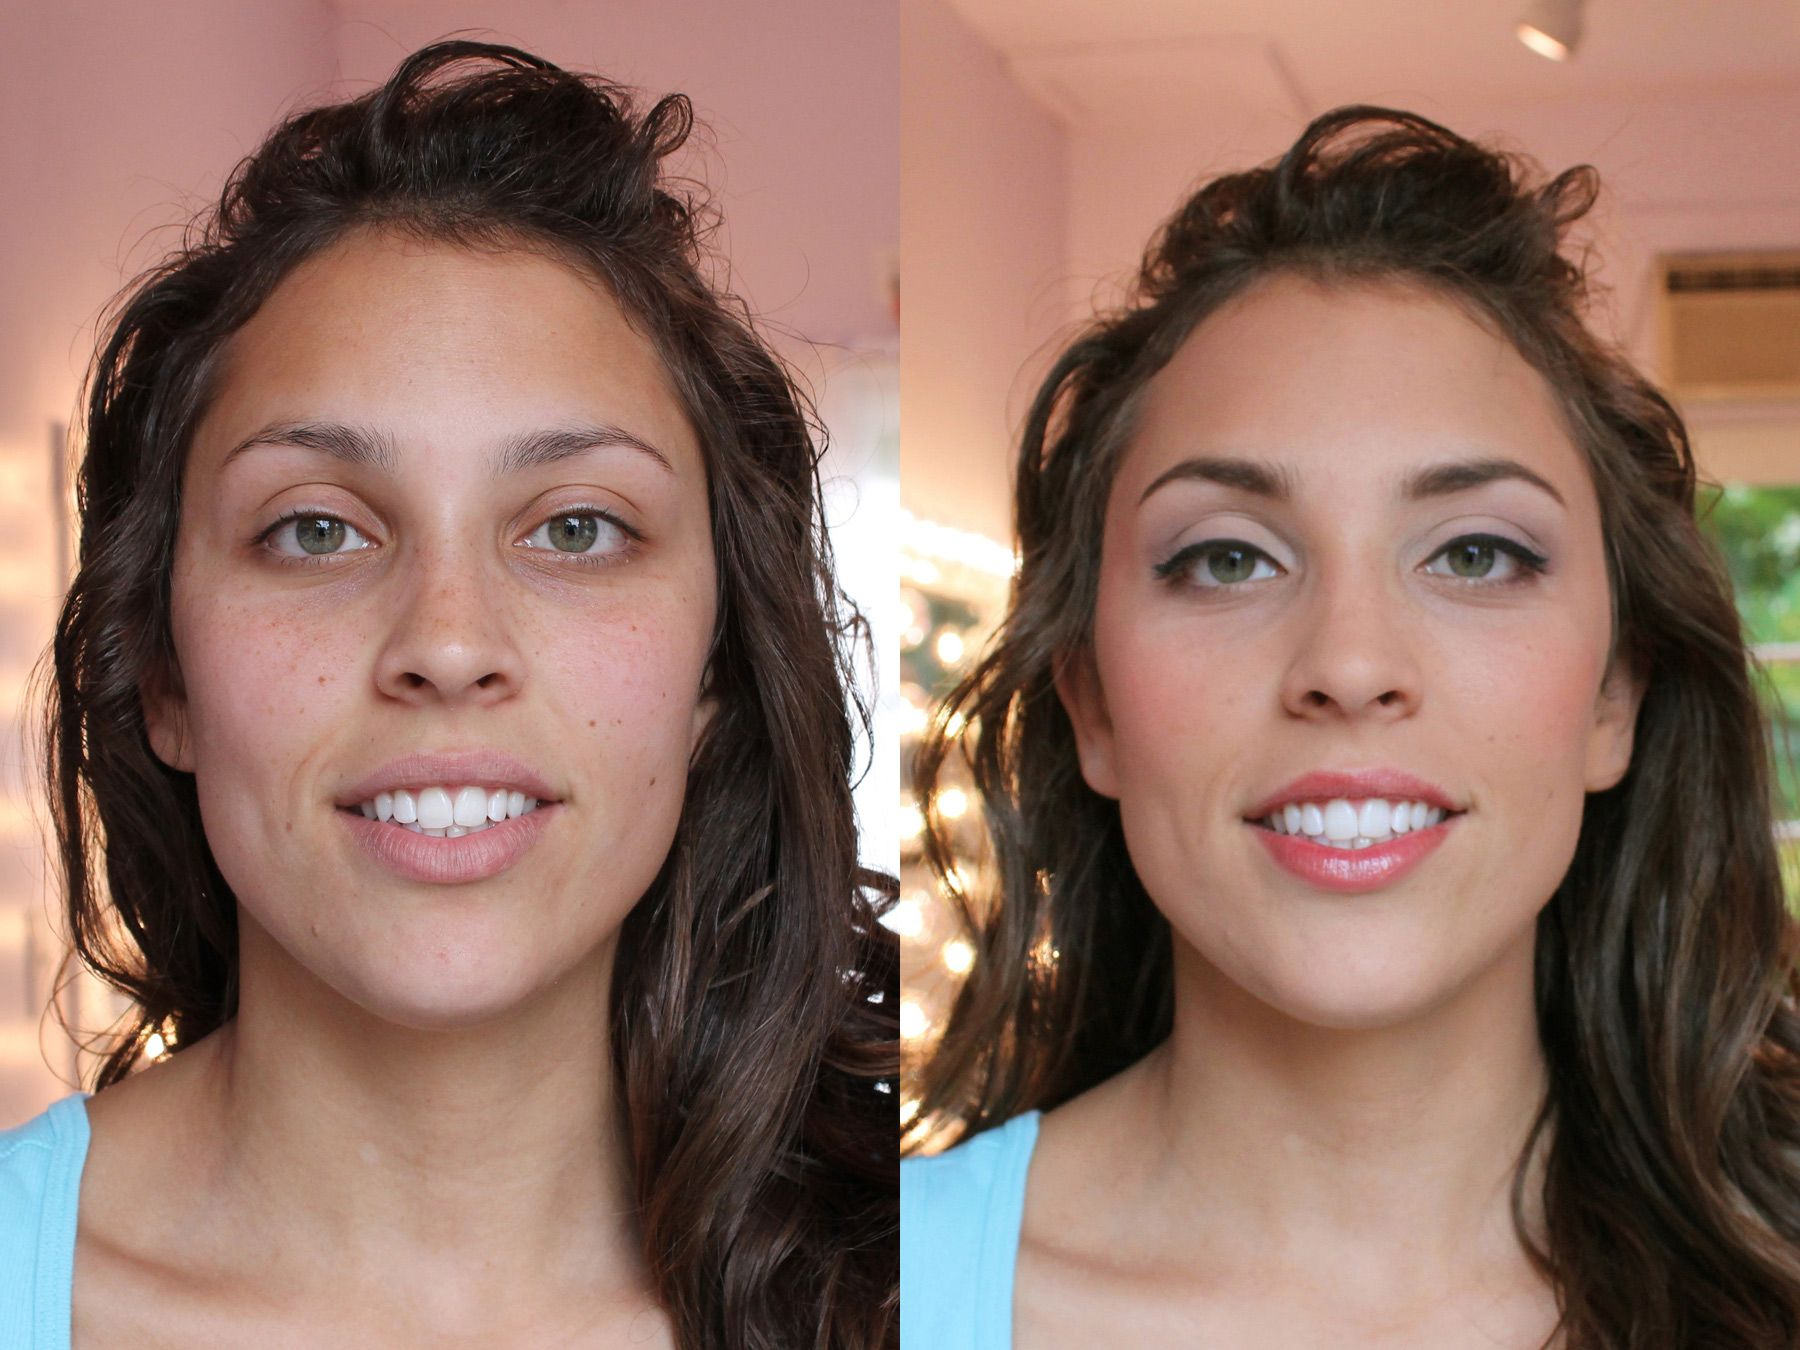 before & after makeup | christy & co. - makeup artistry and